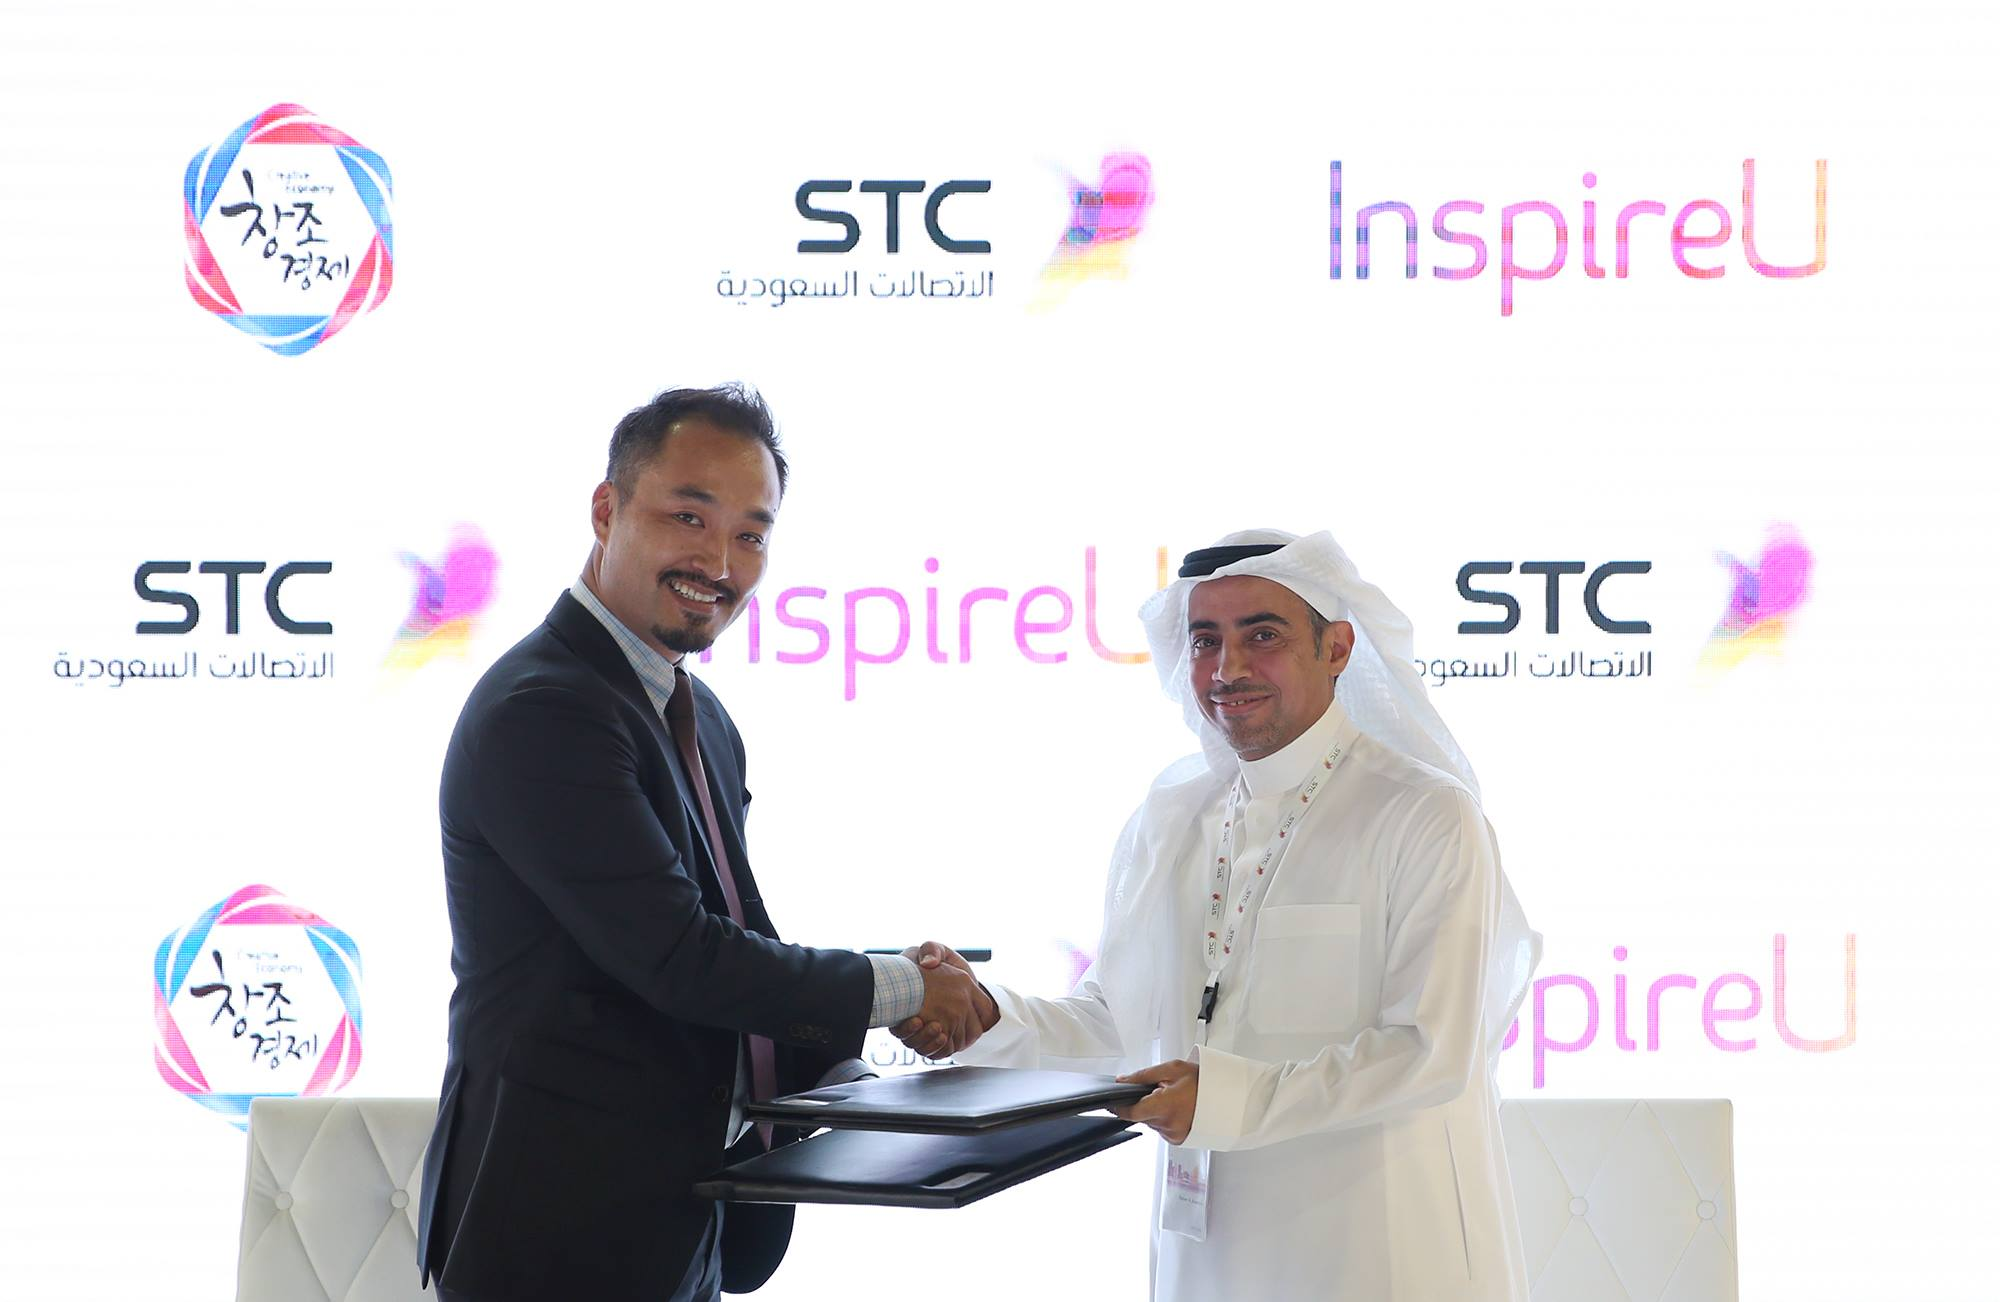 Representatives from the SK Group and Saudi Telecom Co. shake hands over a signed MOU between the two organizations.